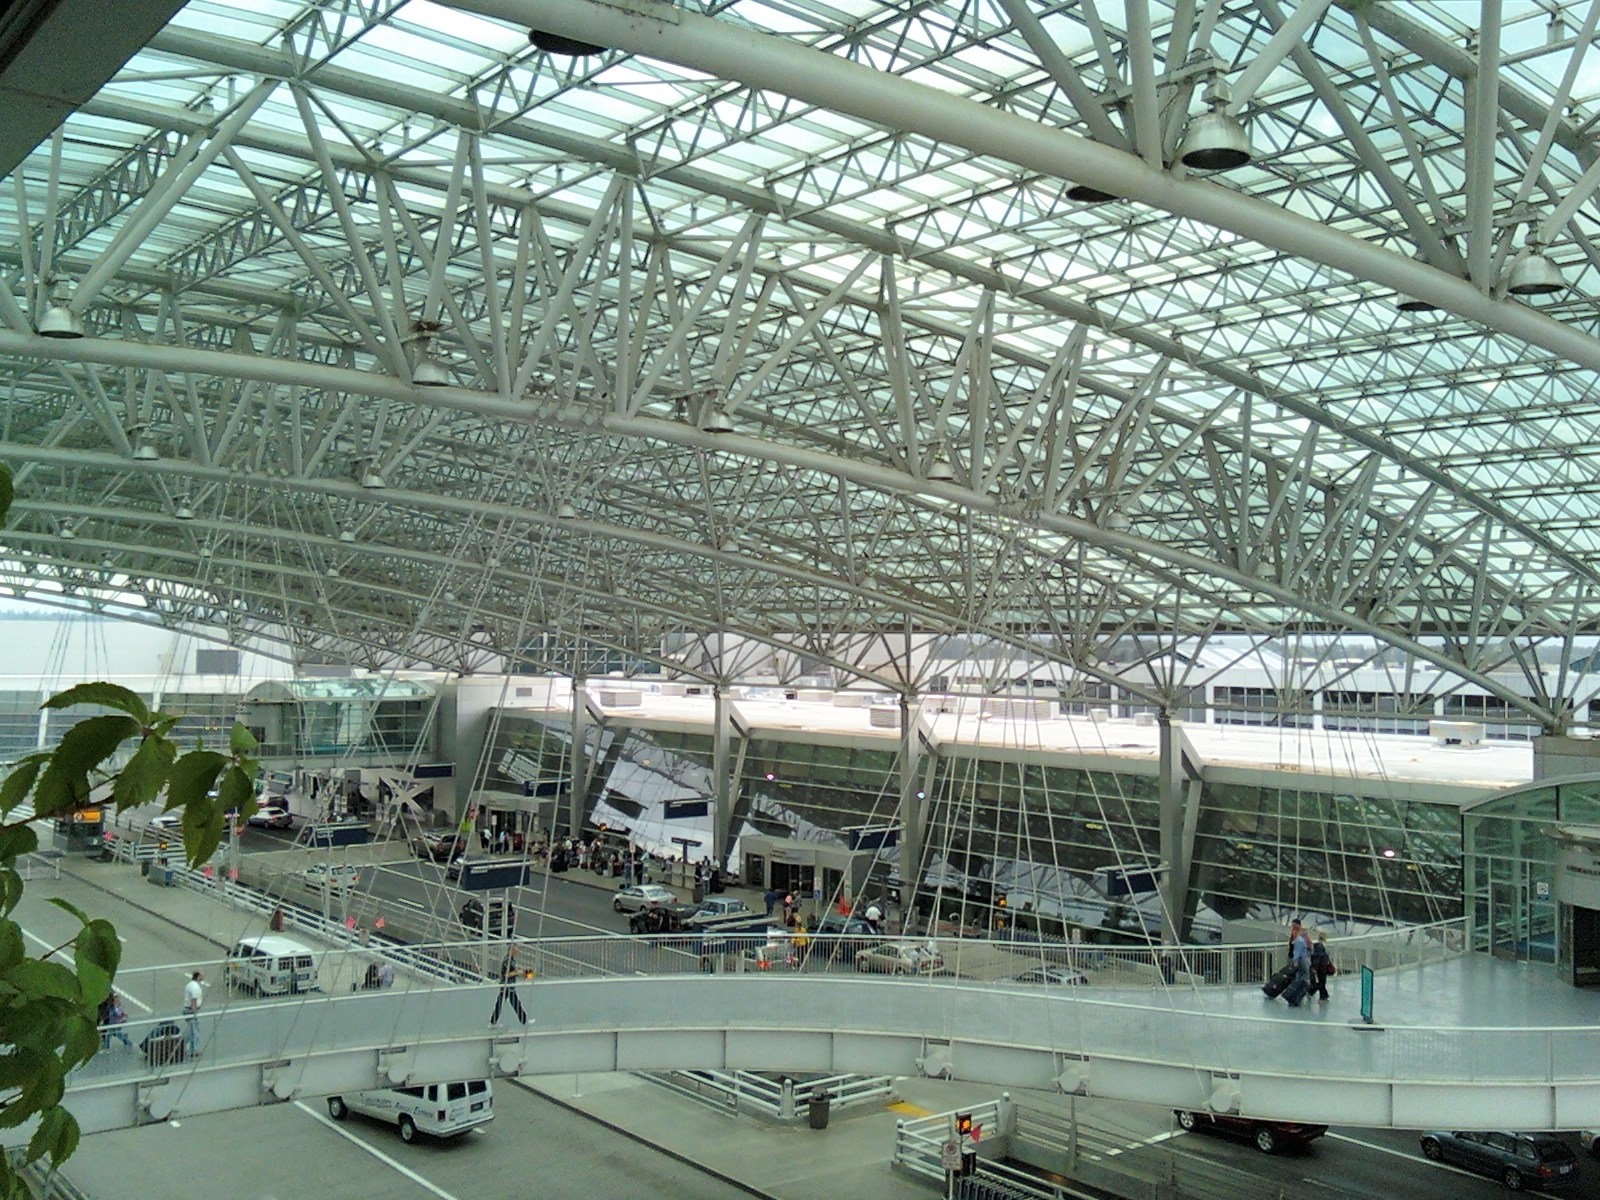 File:PDX drop off canopy wide.jpg - Wikimedia Commons